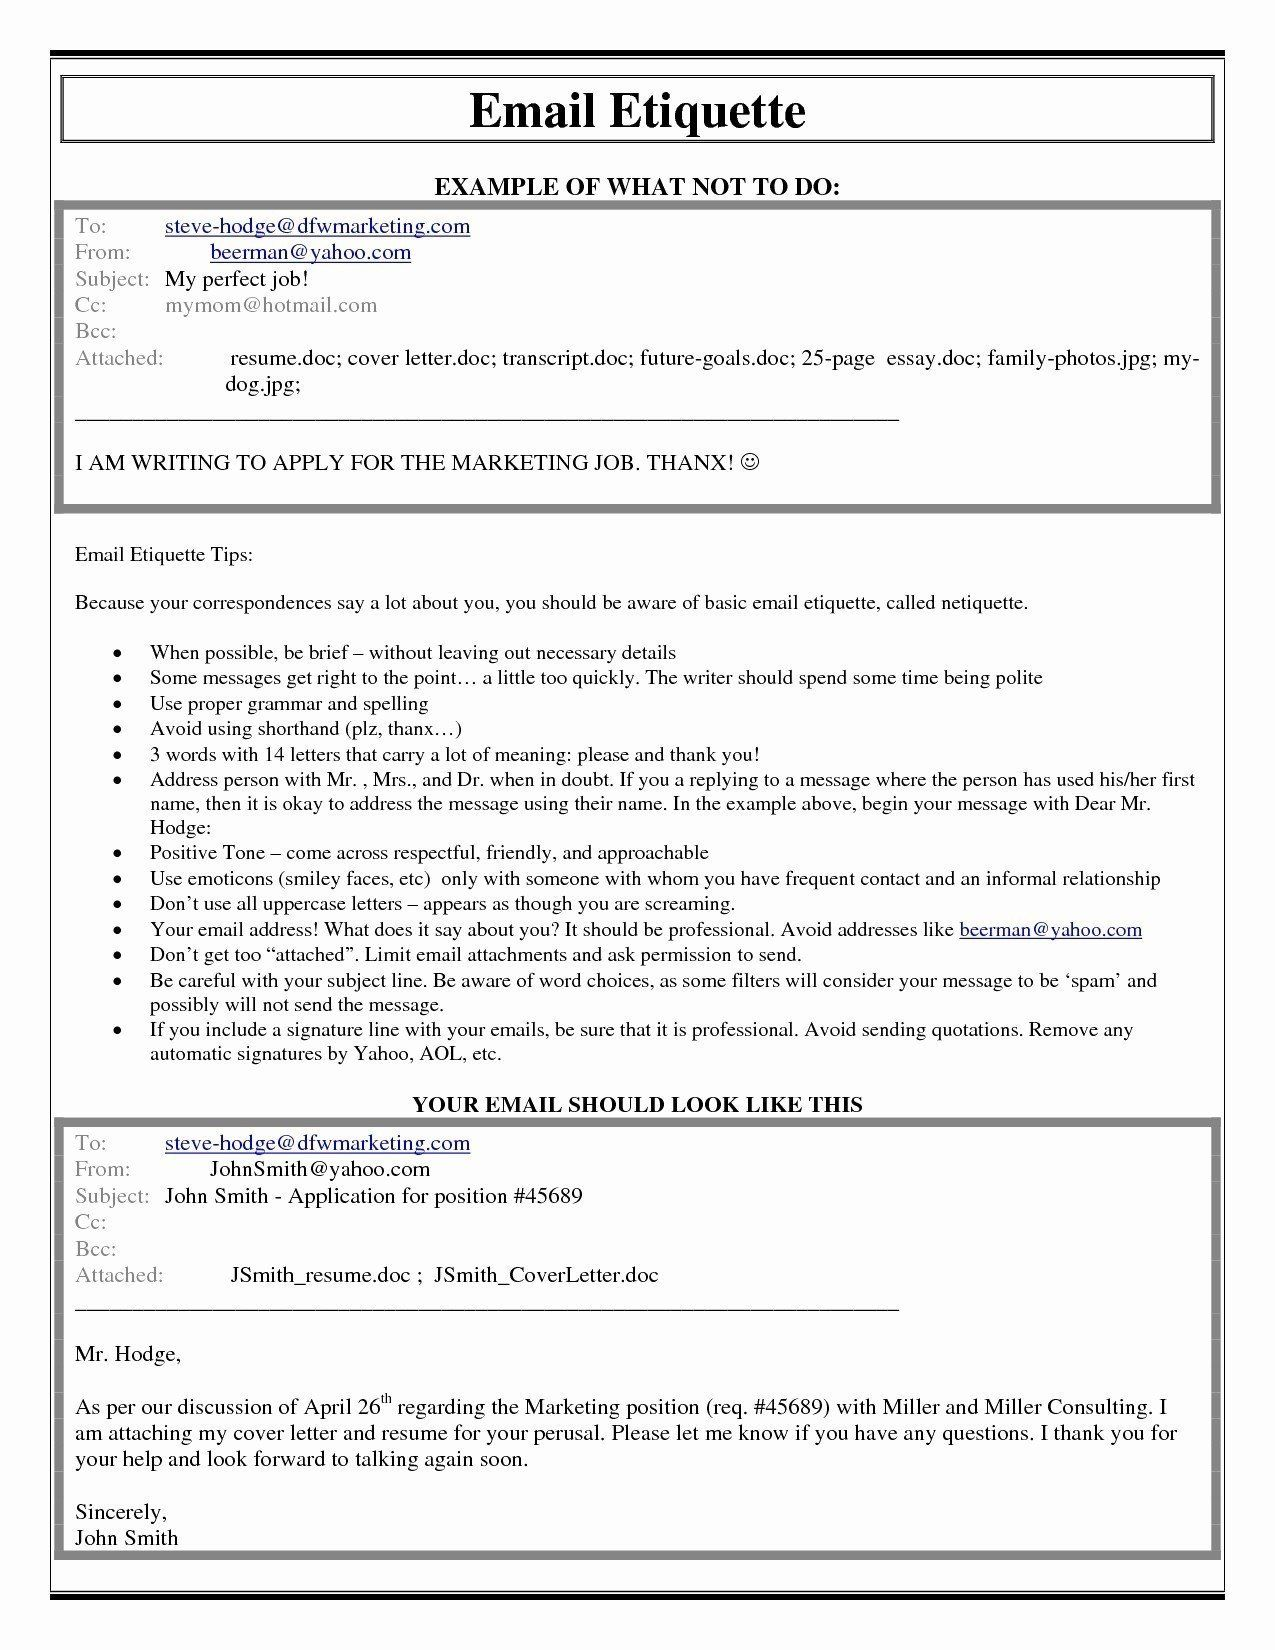 I Have Attached My Resume To This Email What To Say When Emailing A Resume Kizi Games In 2020 Job Resume Examples Resume Template Examples Resume